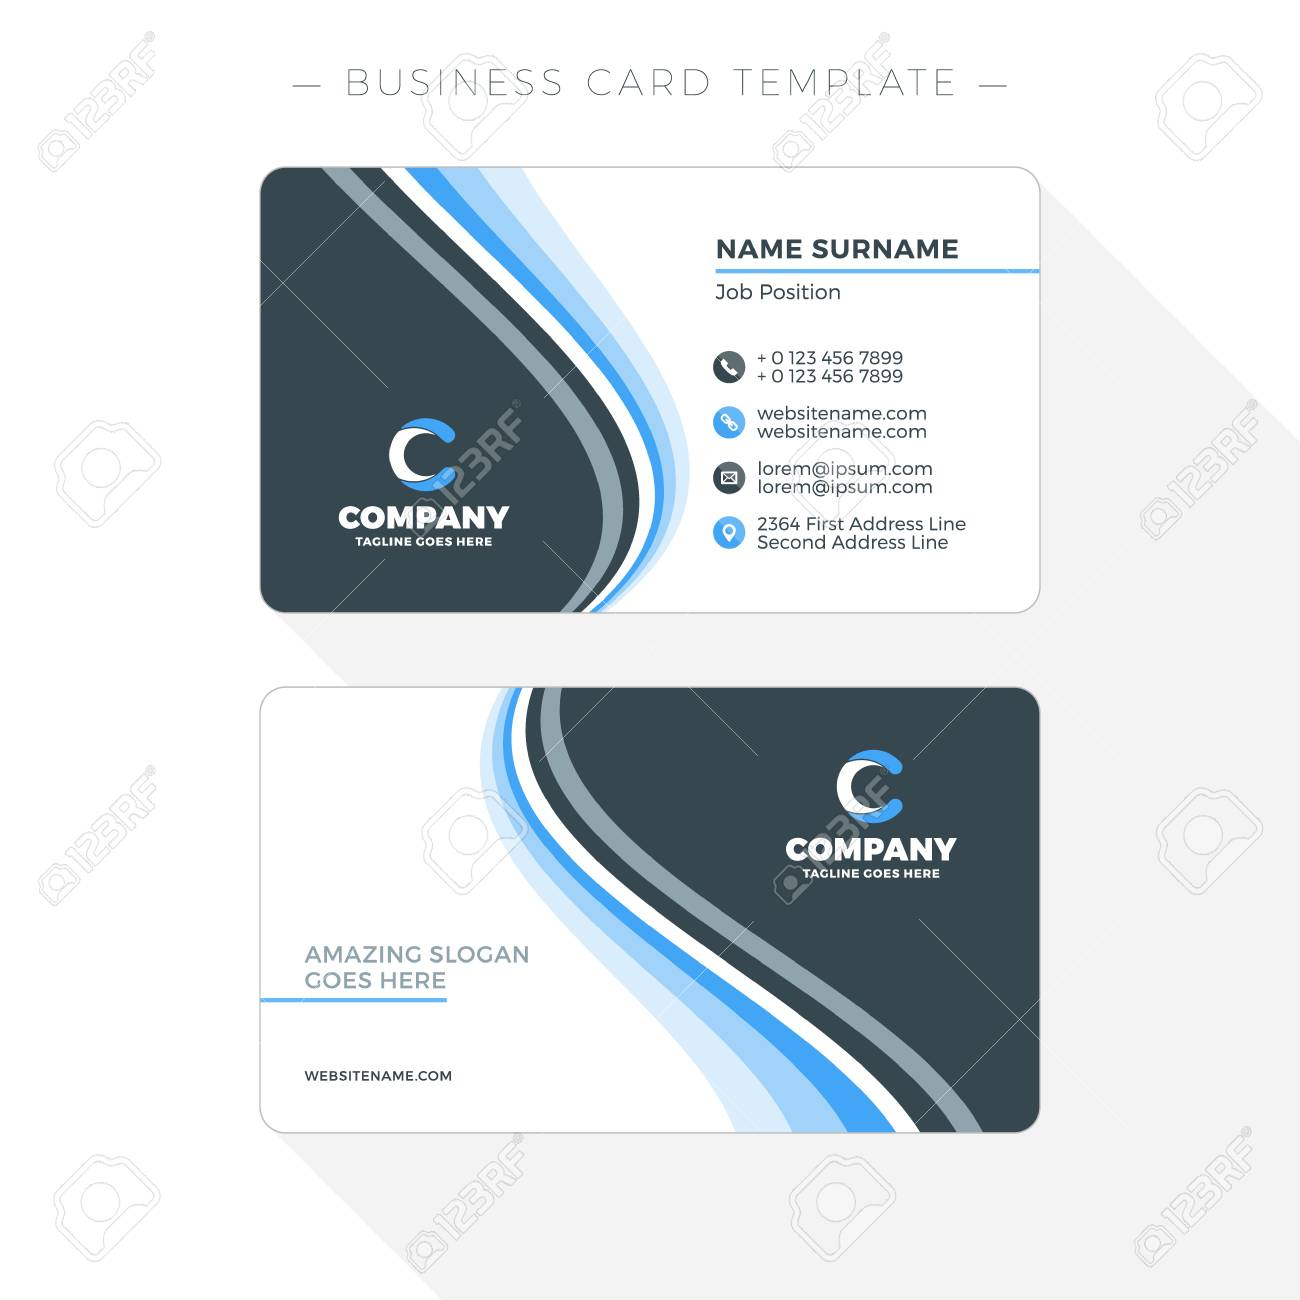 double sided business card template with abstract blue and black